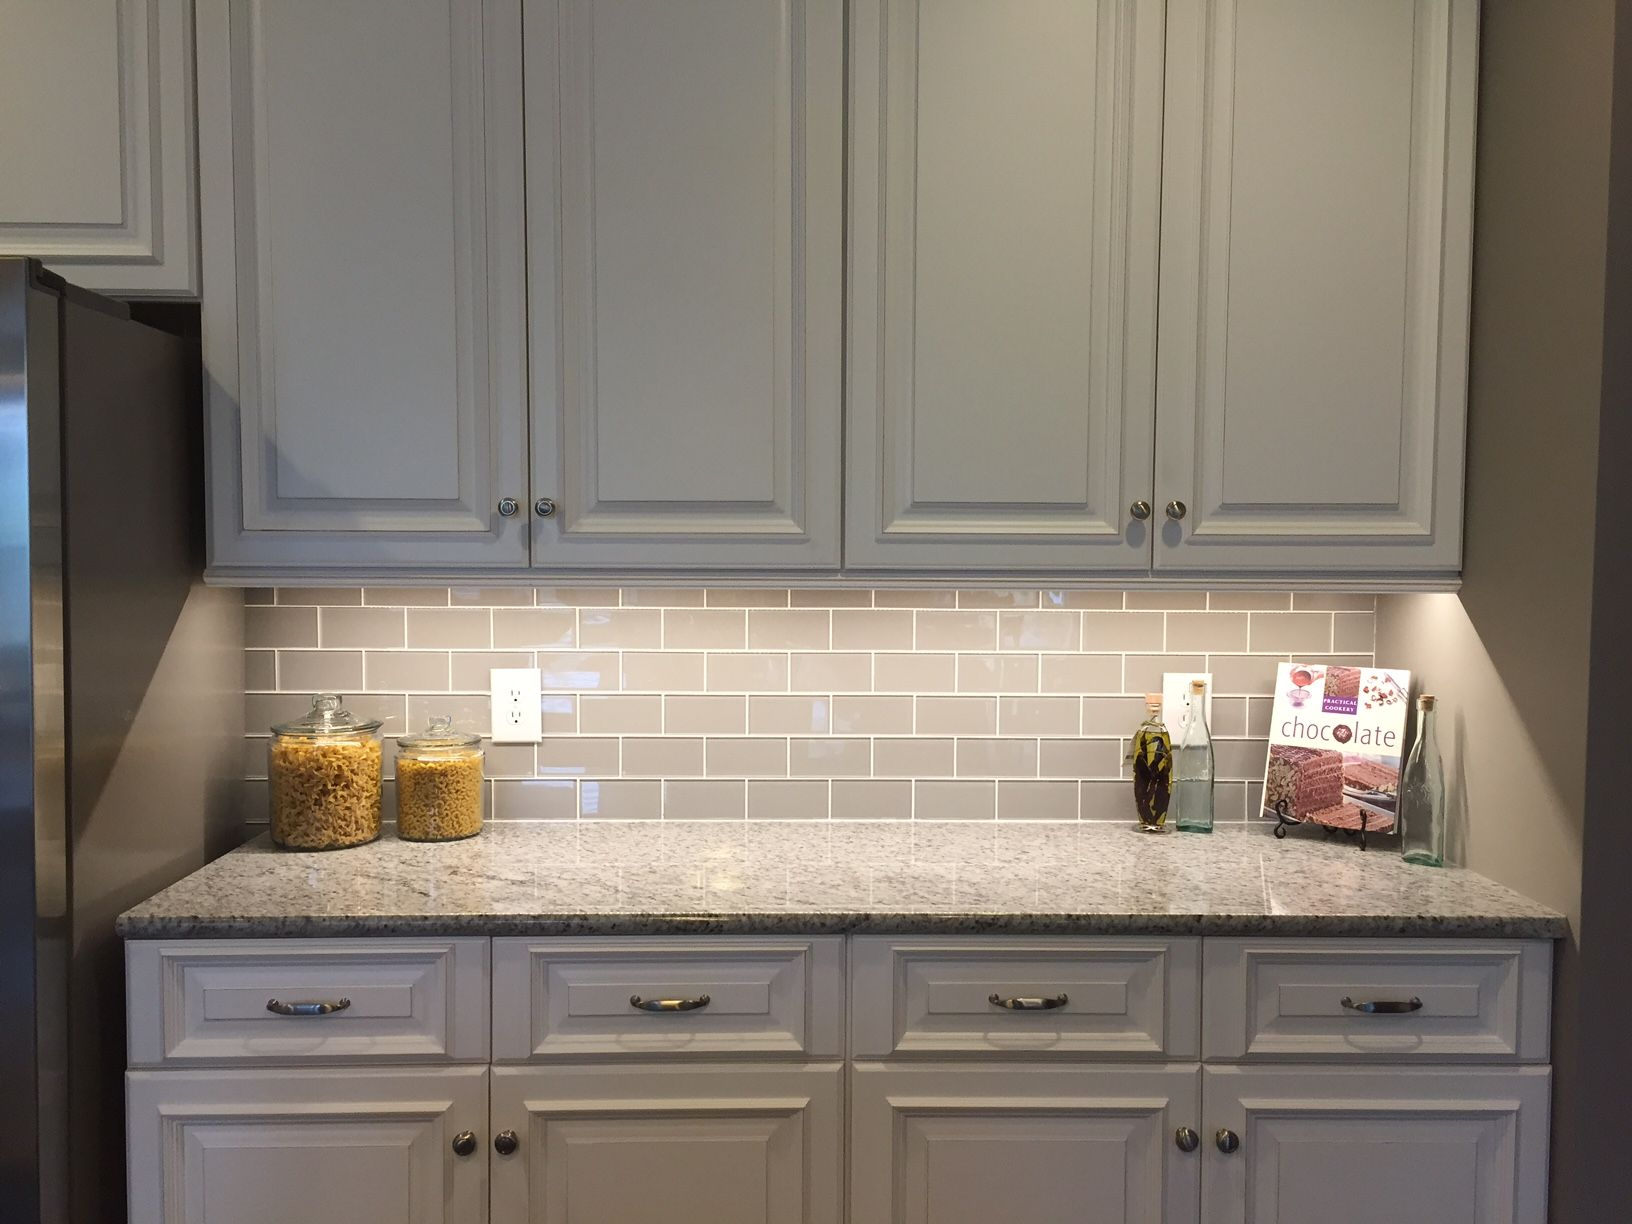 Lovely Glass Subway Tile Backsplash Ideas Part - 6: Smoke Grey Glass Subway Tile Backsplash Tile. Https://www.subwaytileoutlet.